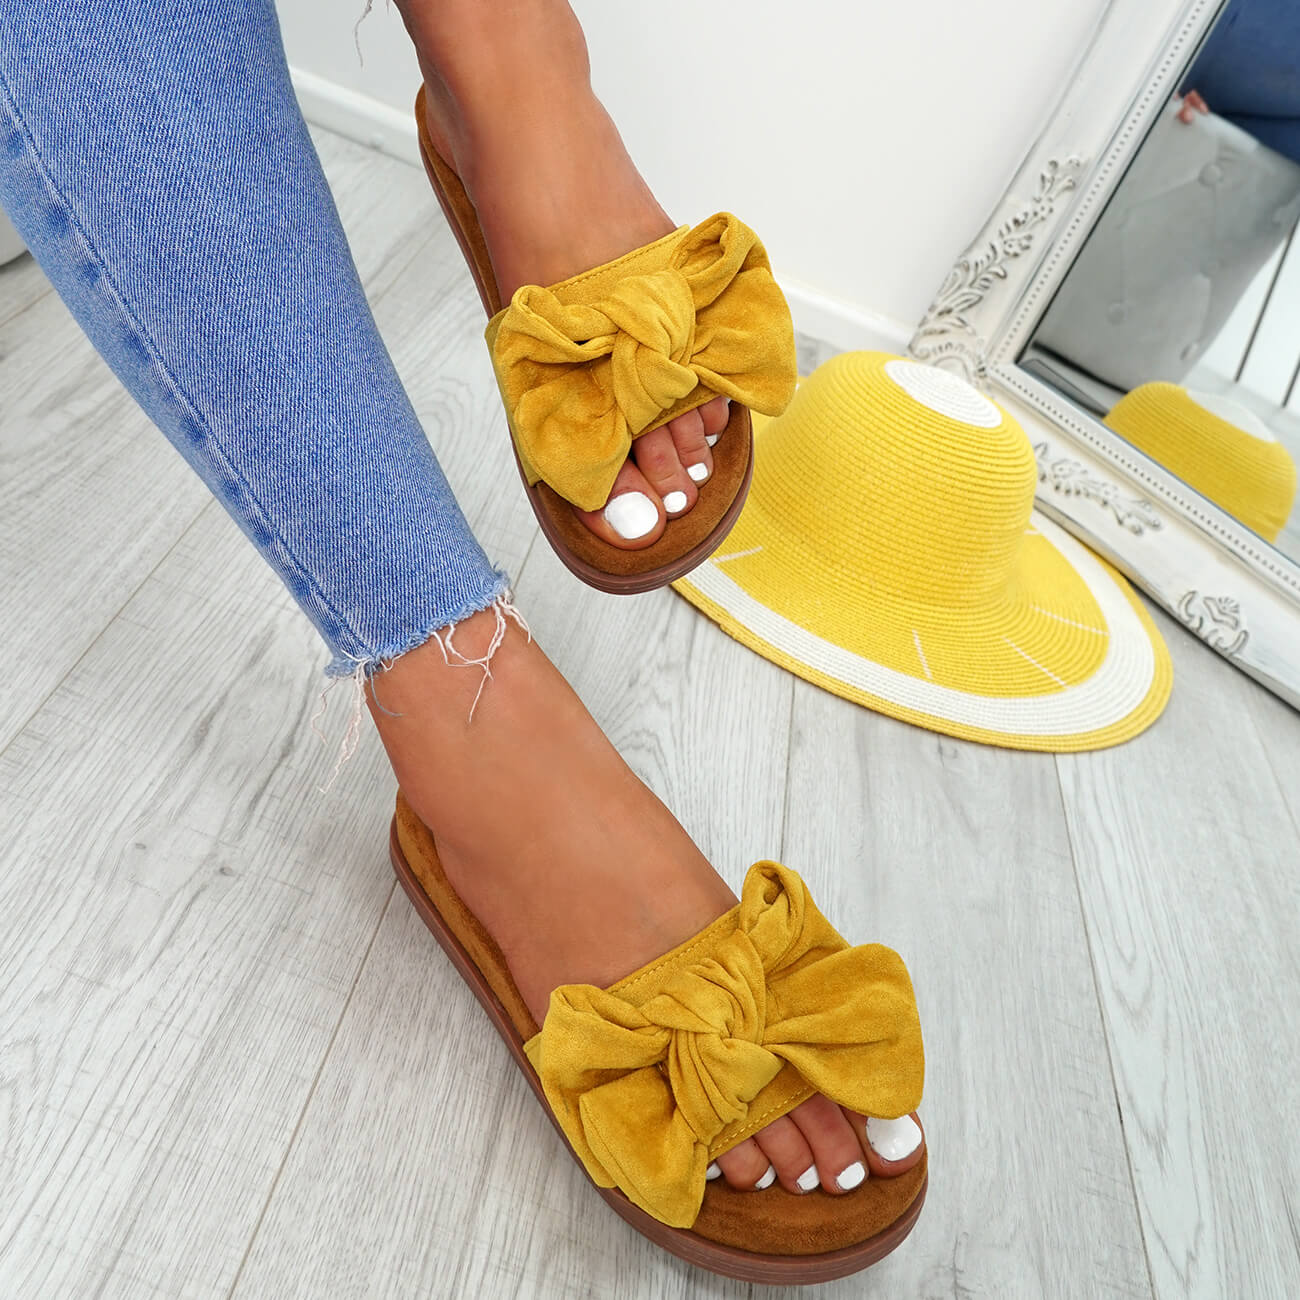 WOMENS-LADIES-FLAT-SANDALS-FRONT-BOW-COMFY-SUMMER-CASUAL-HOLIDAY-SHOES-SIZE-UK thumbnail 29